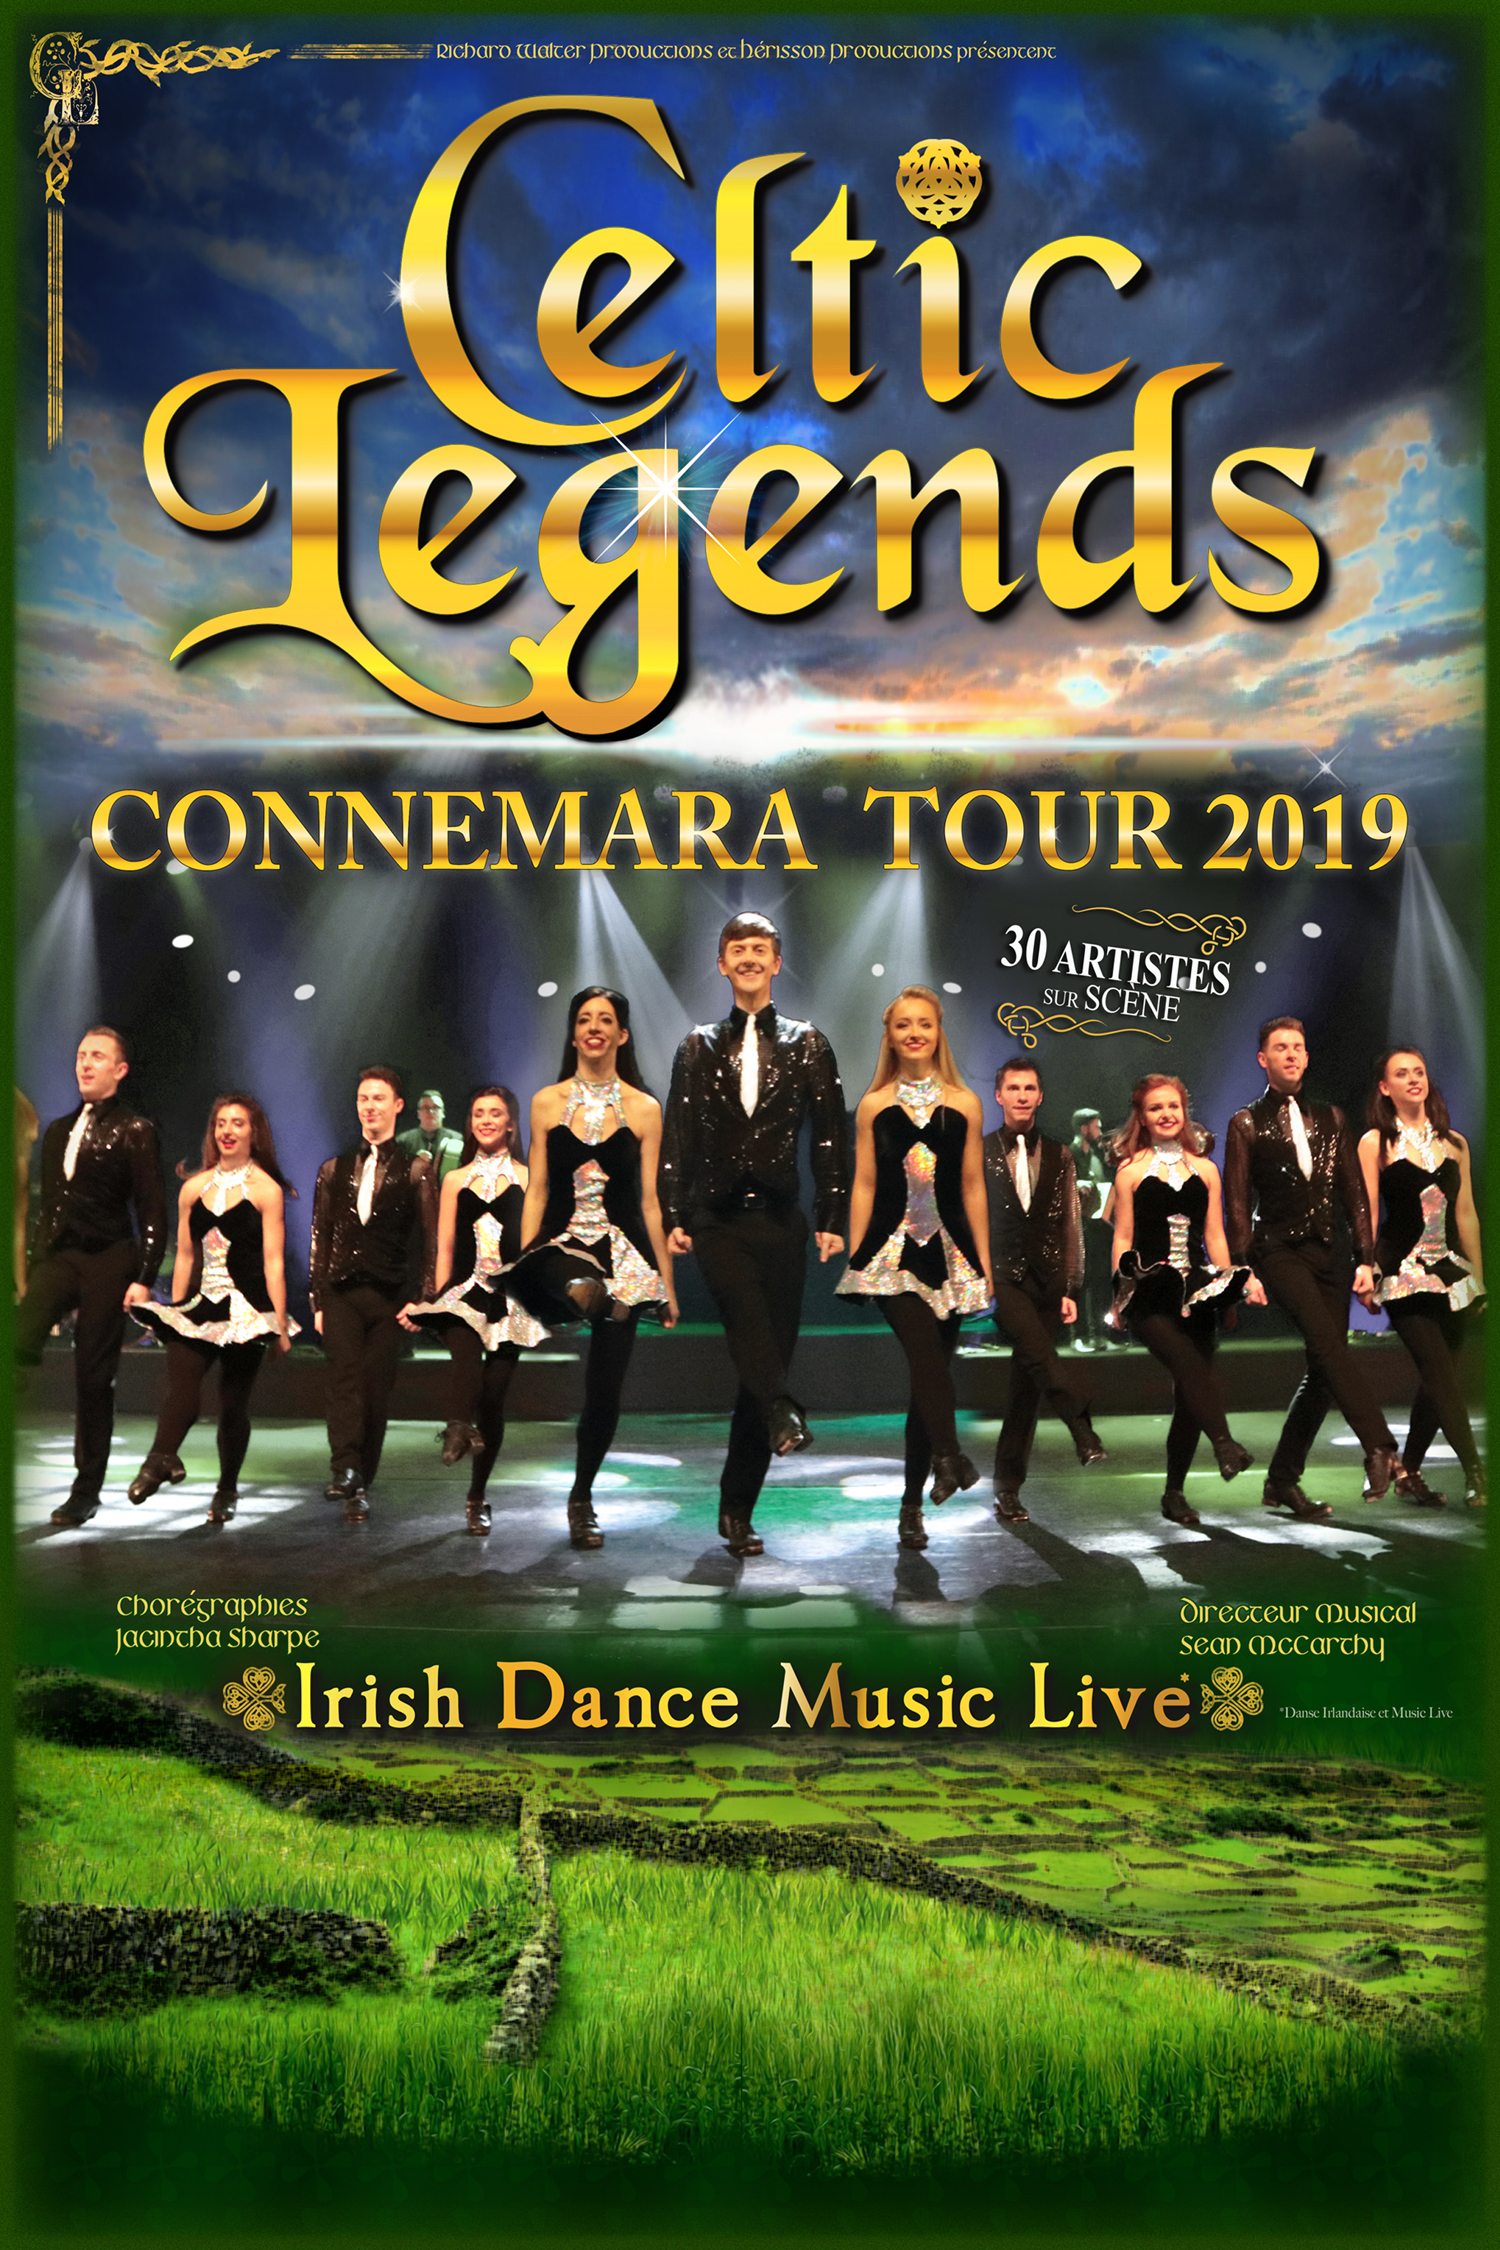 Celtic Legends revient en 2019 avec 5 dates à l'Olympia à Paris